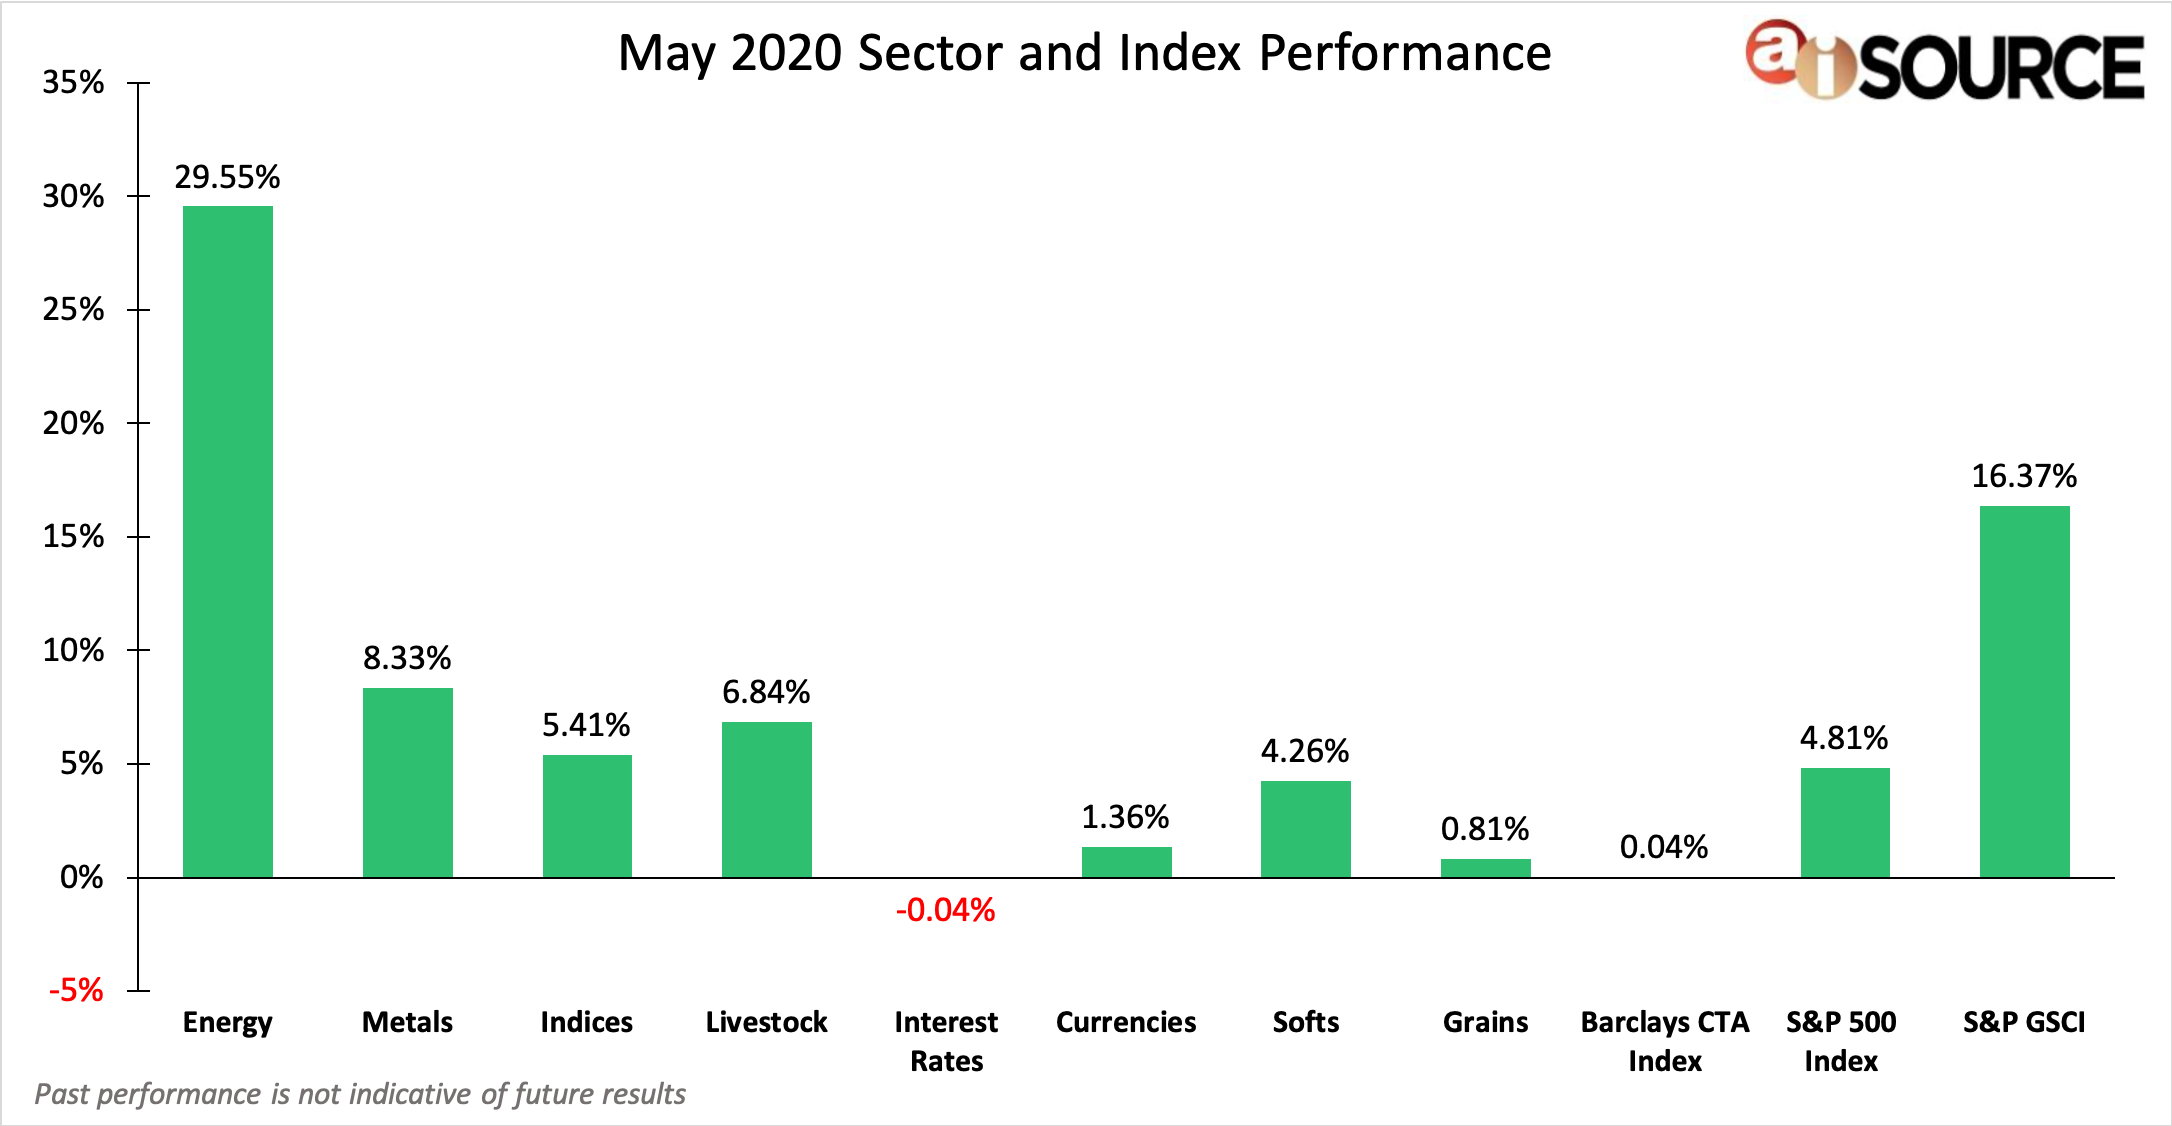 May 2020 Sector and Index Performance